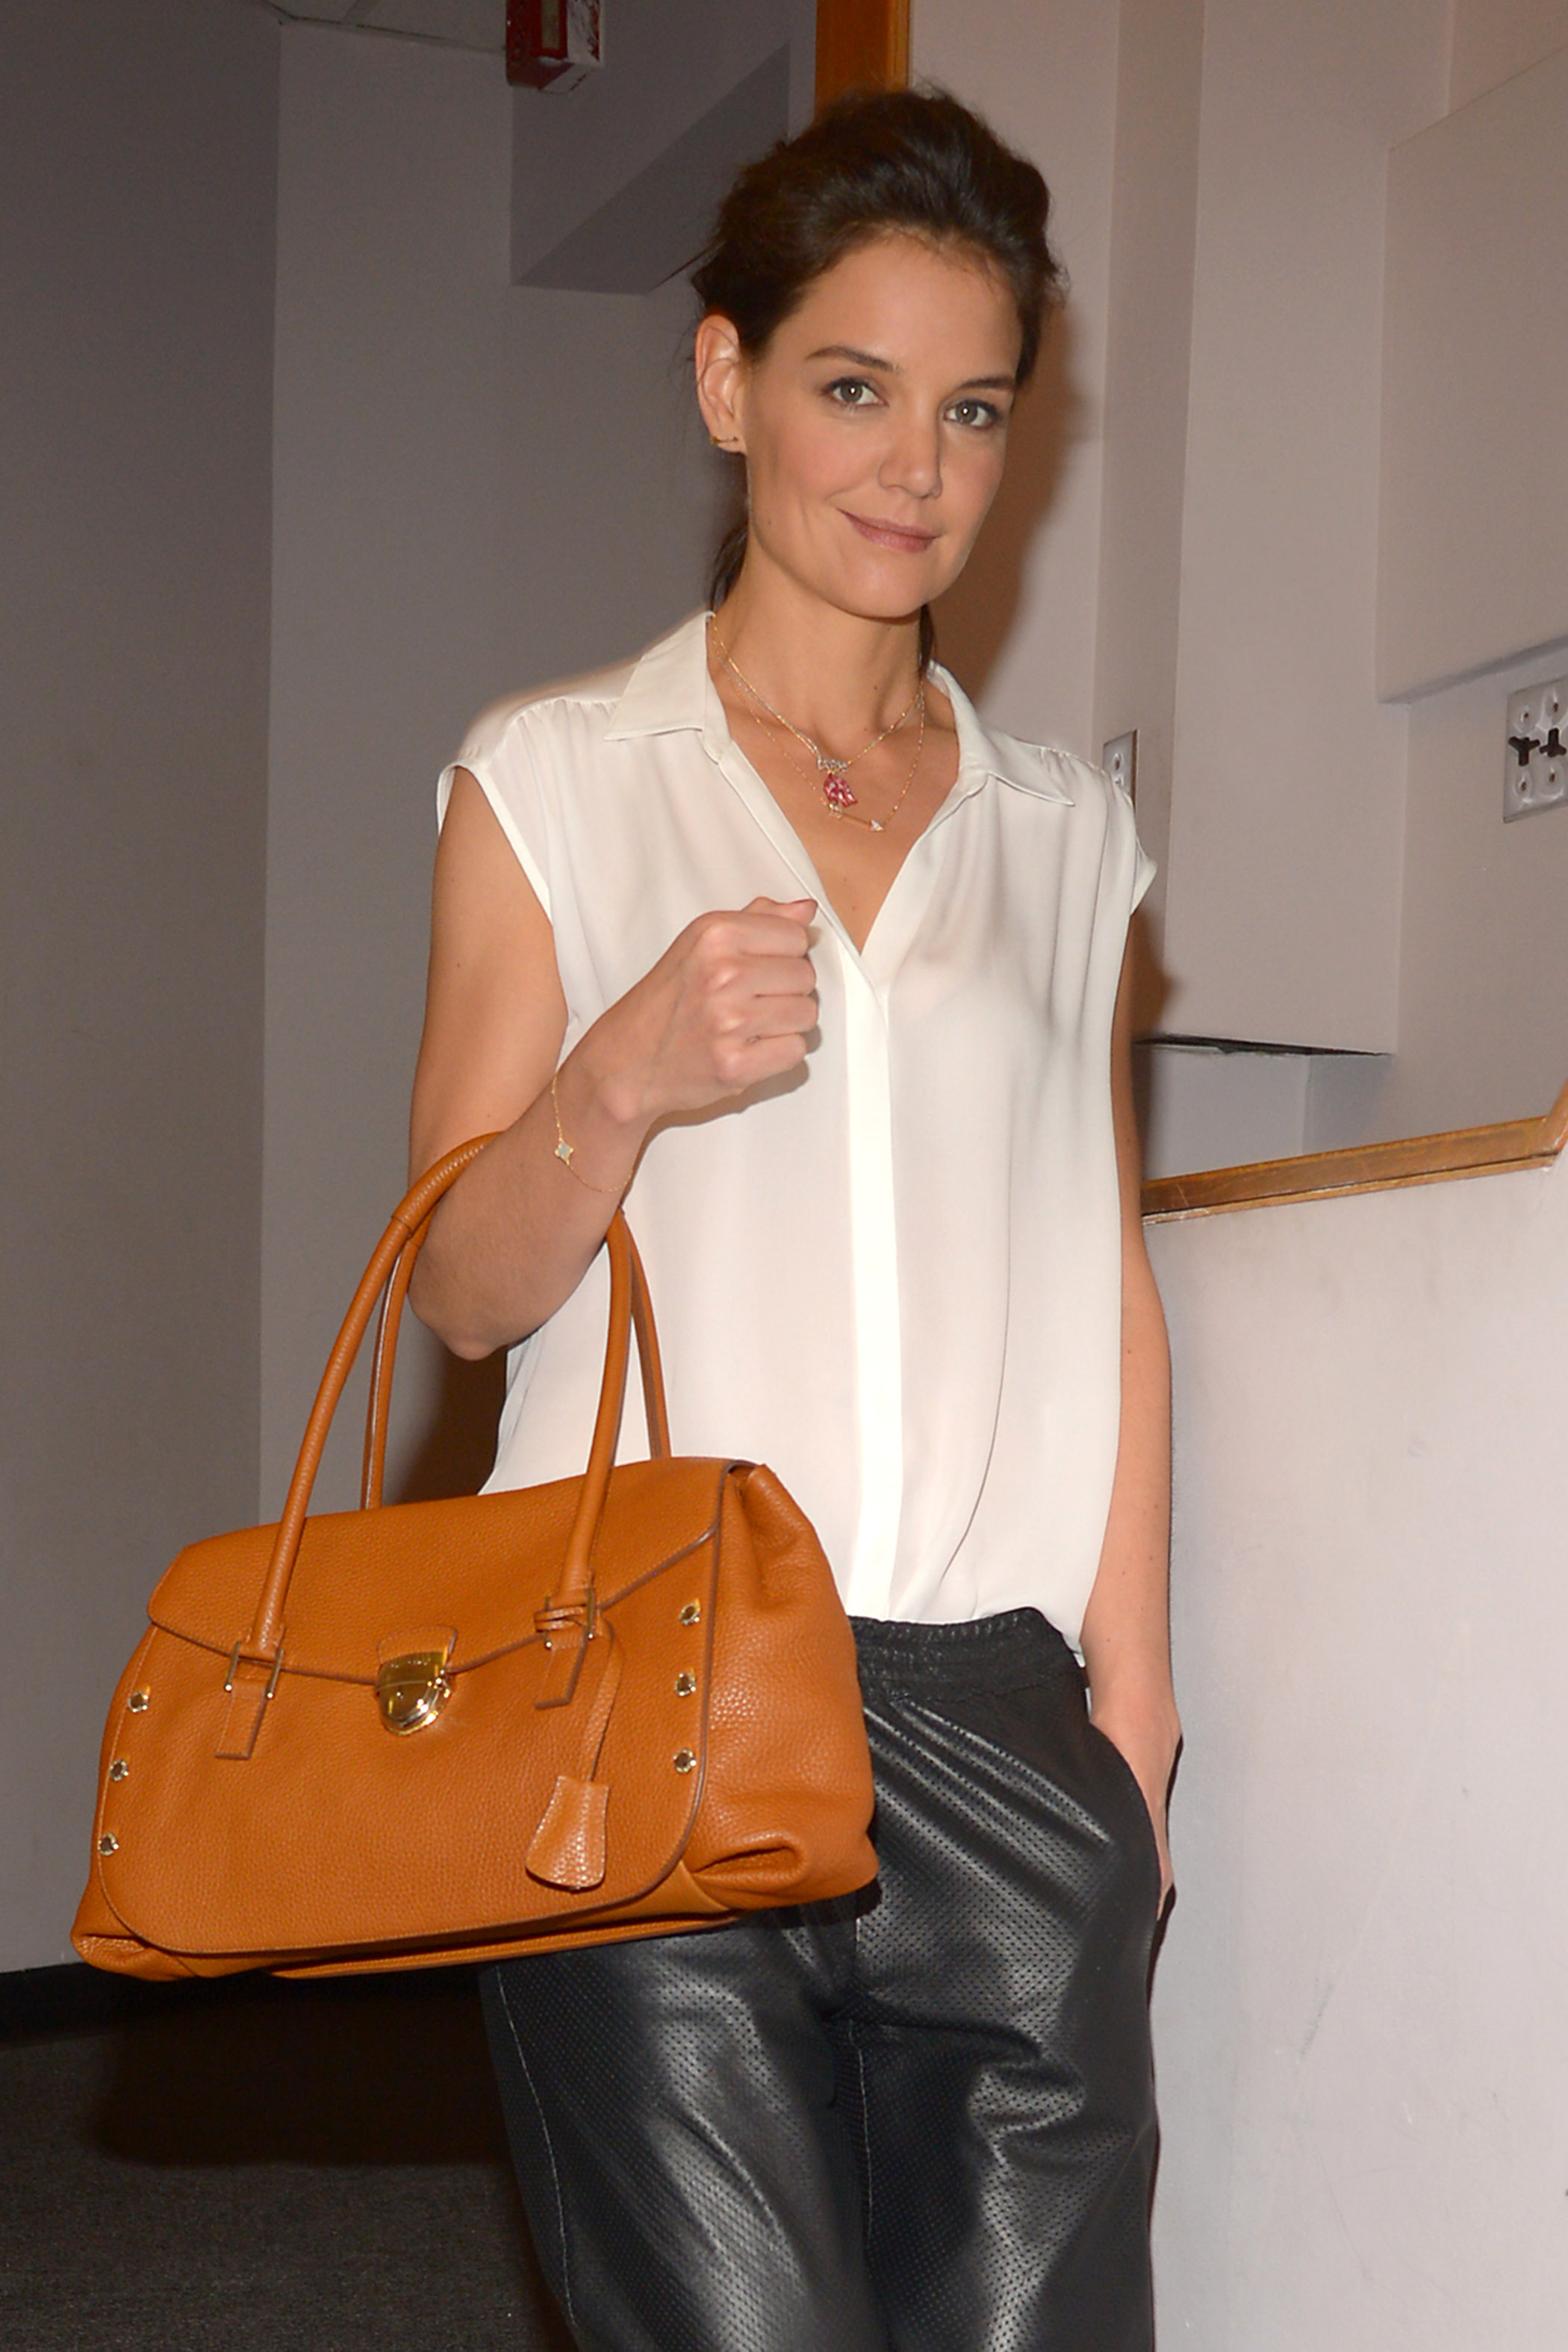 Katie Holmes Looking Great In this Trussardi Bag